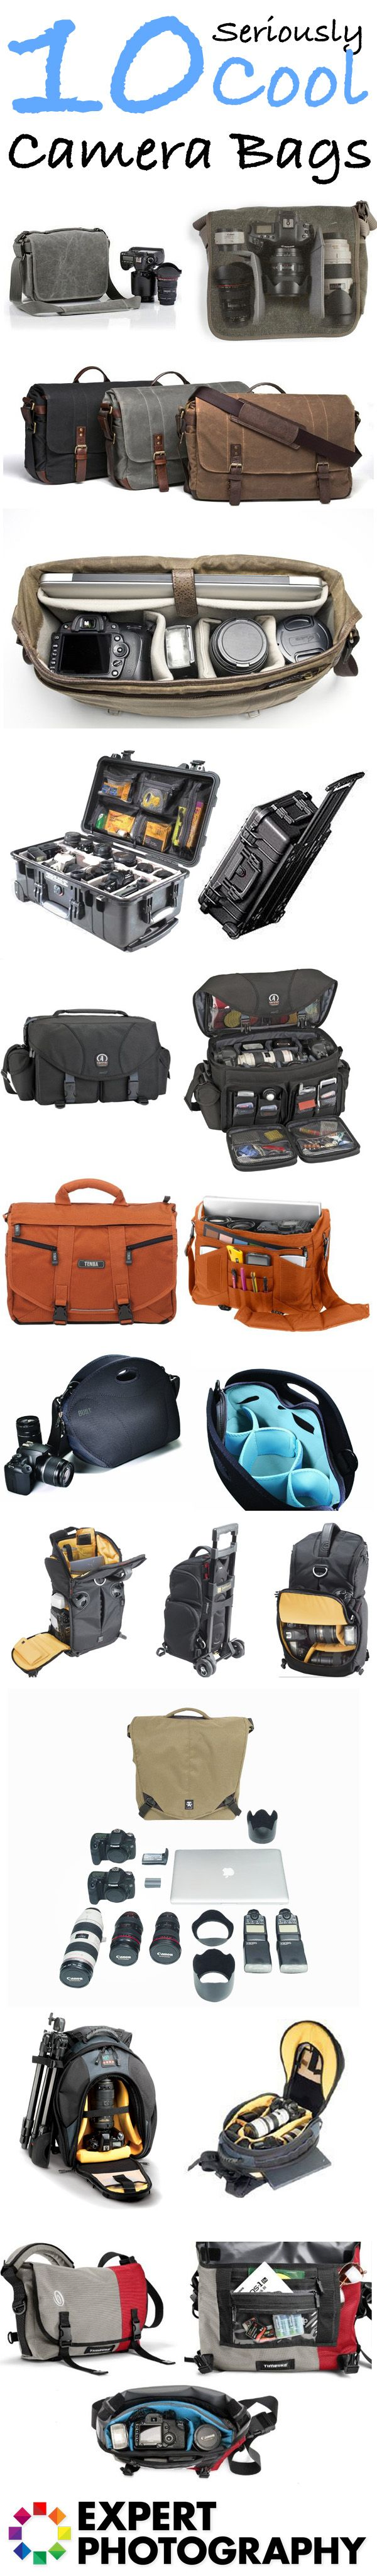 10 Seriously Cool Camera Bags » Expert Photography - I love the one that lets you carry your MacBook!